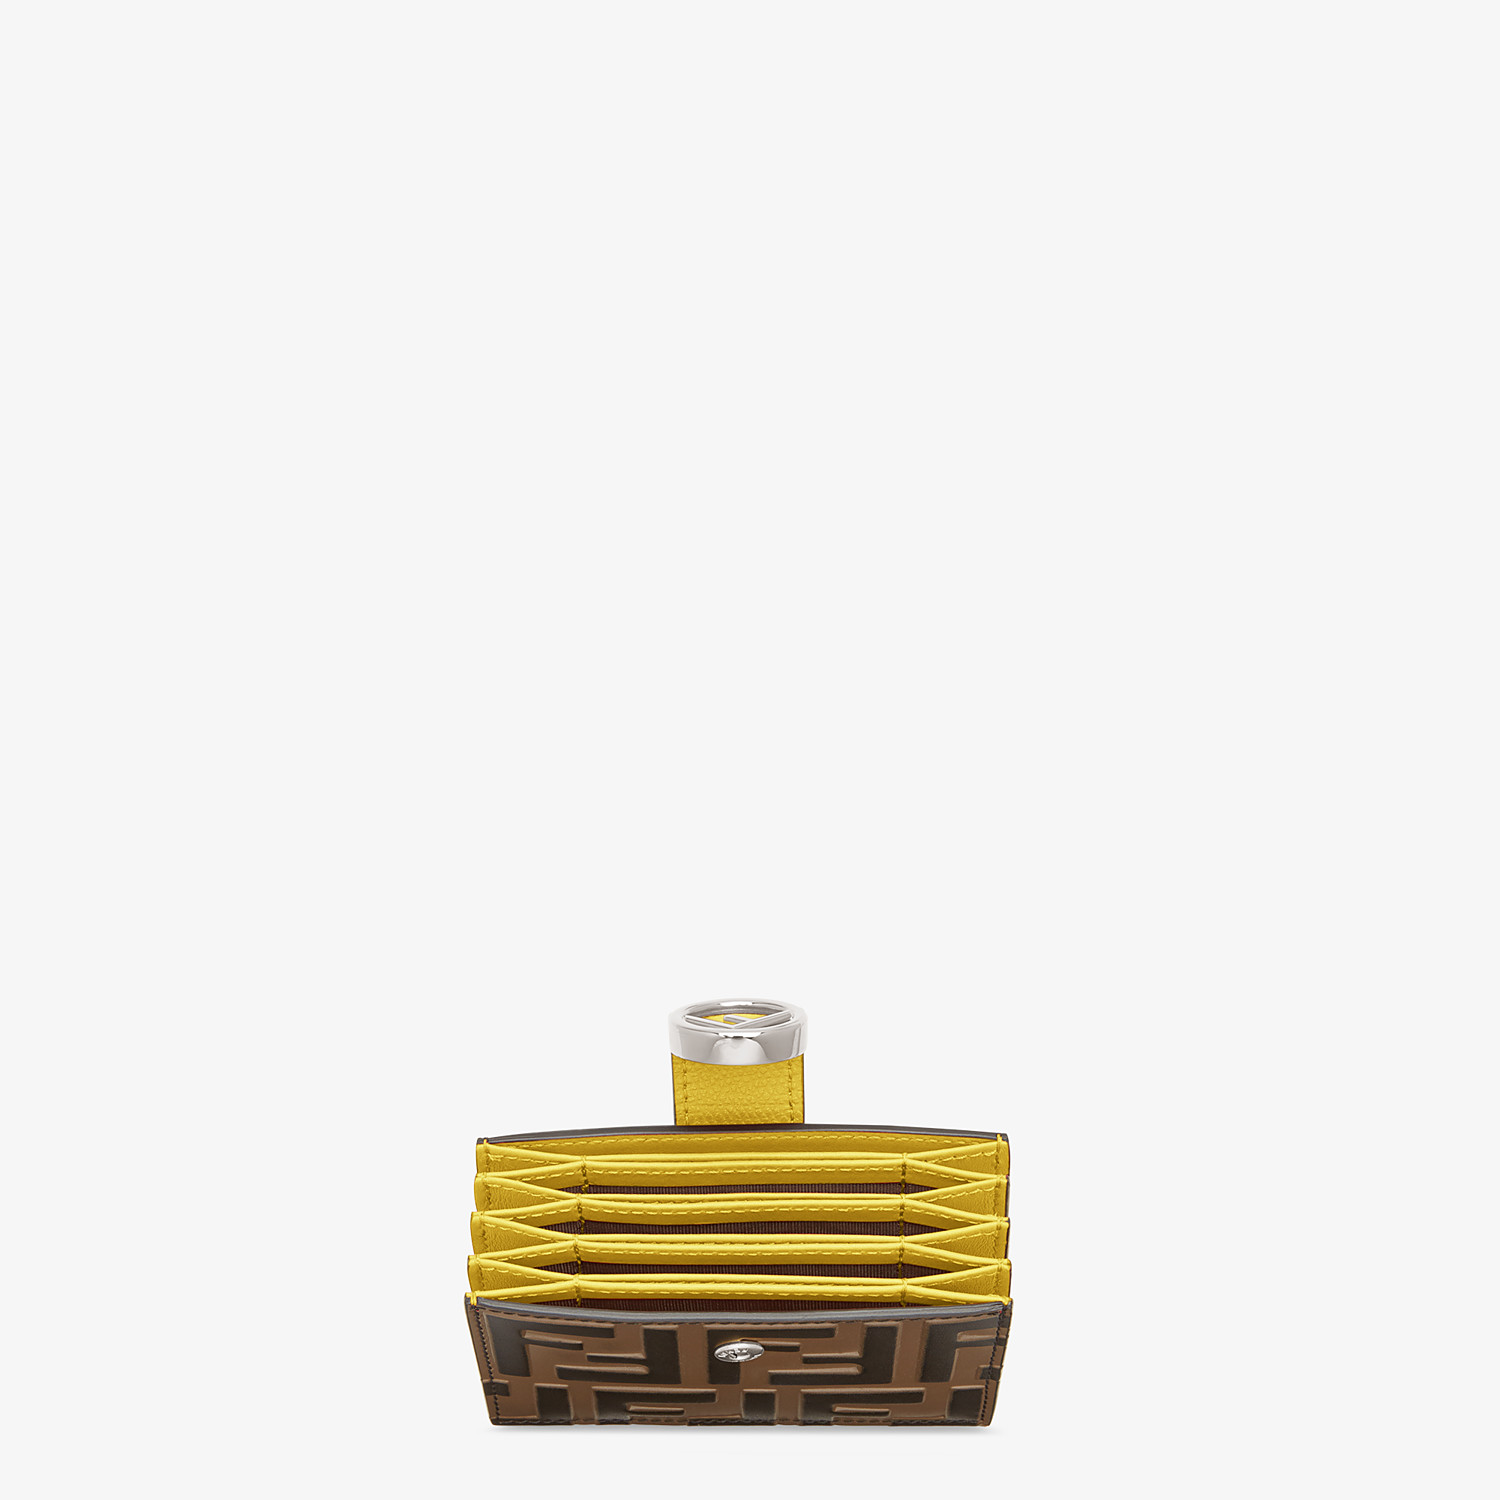 FENDI CARD HOLDER - Yellow leather gusseted card holder - view 4 detail